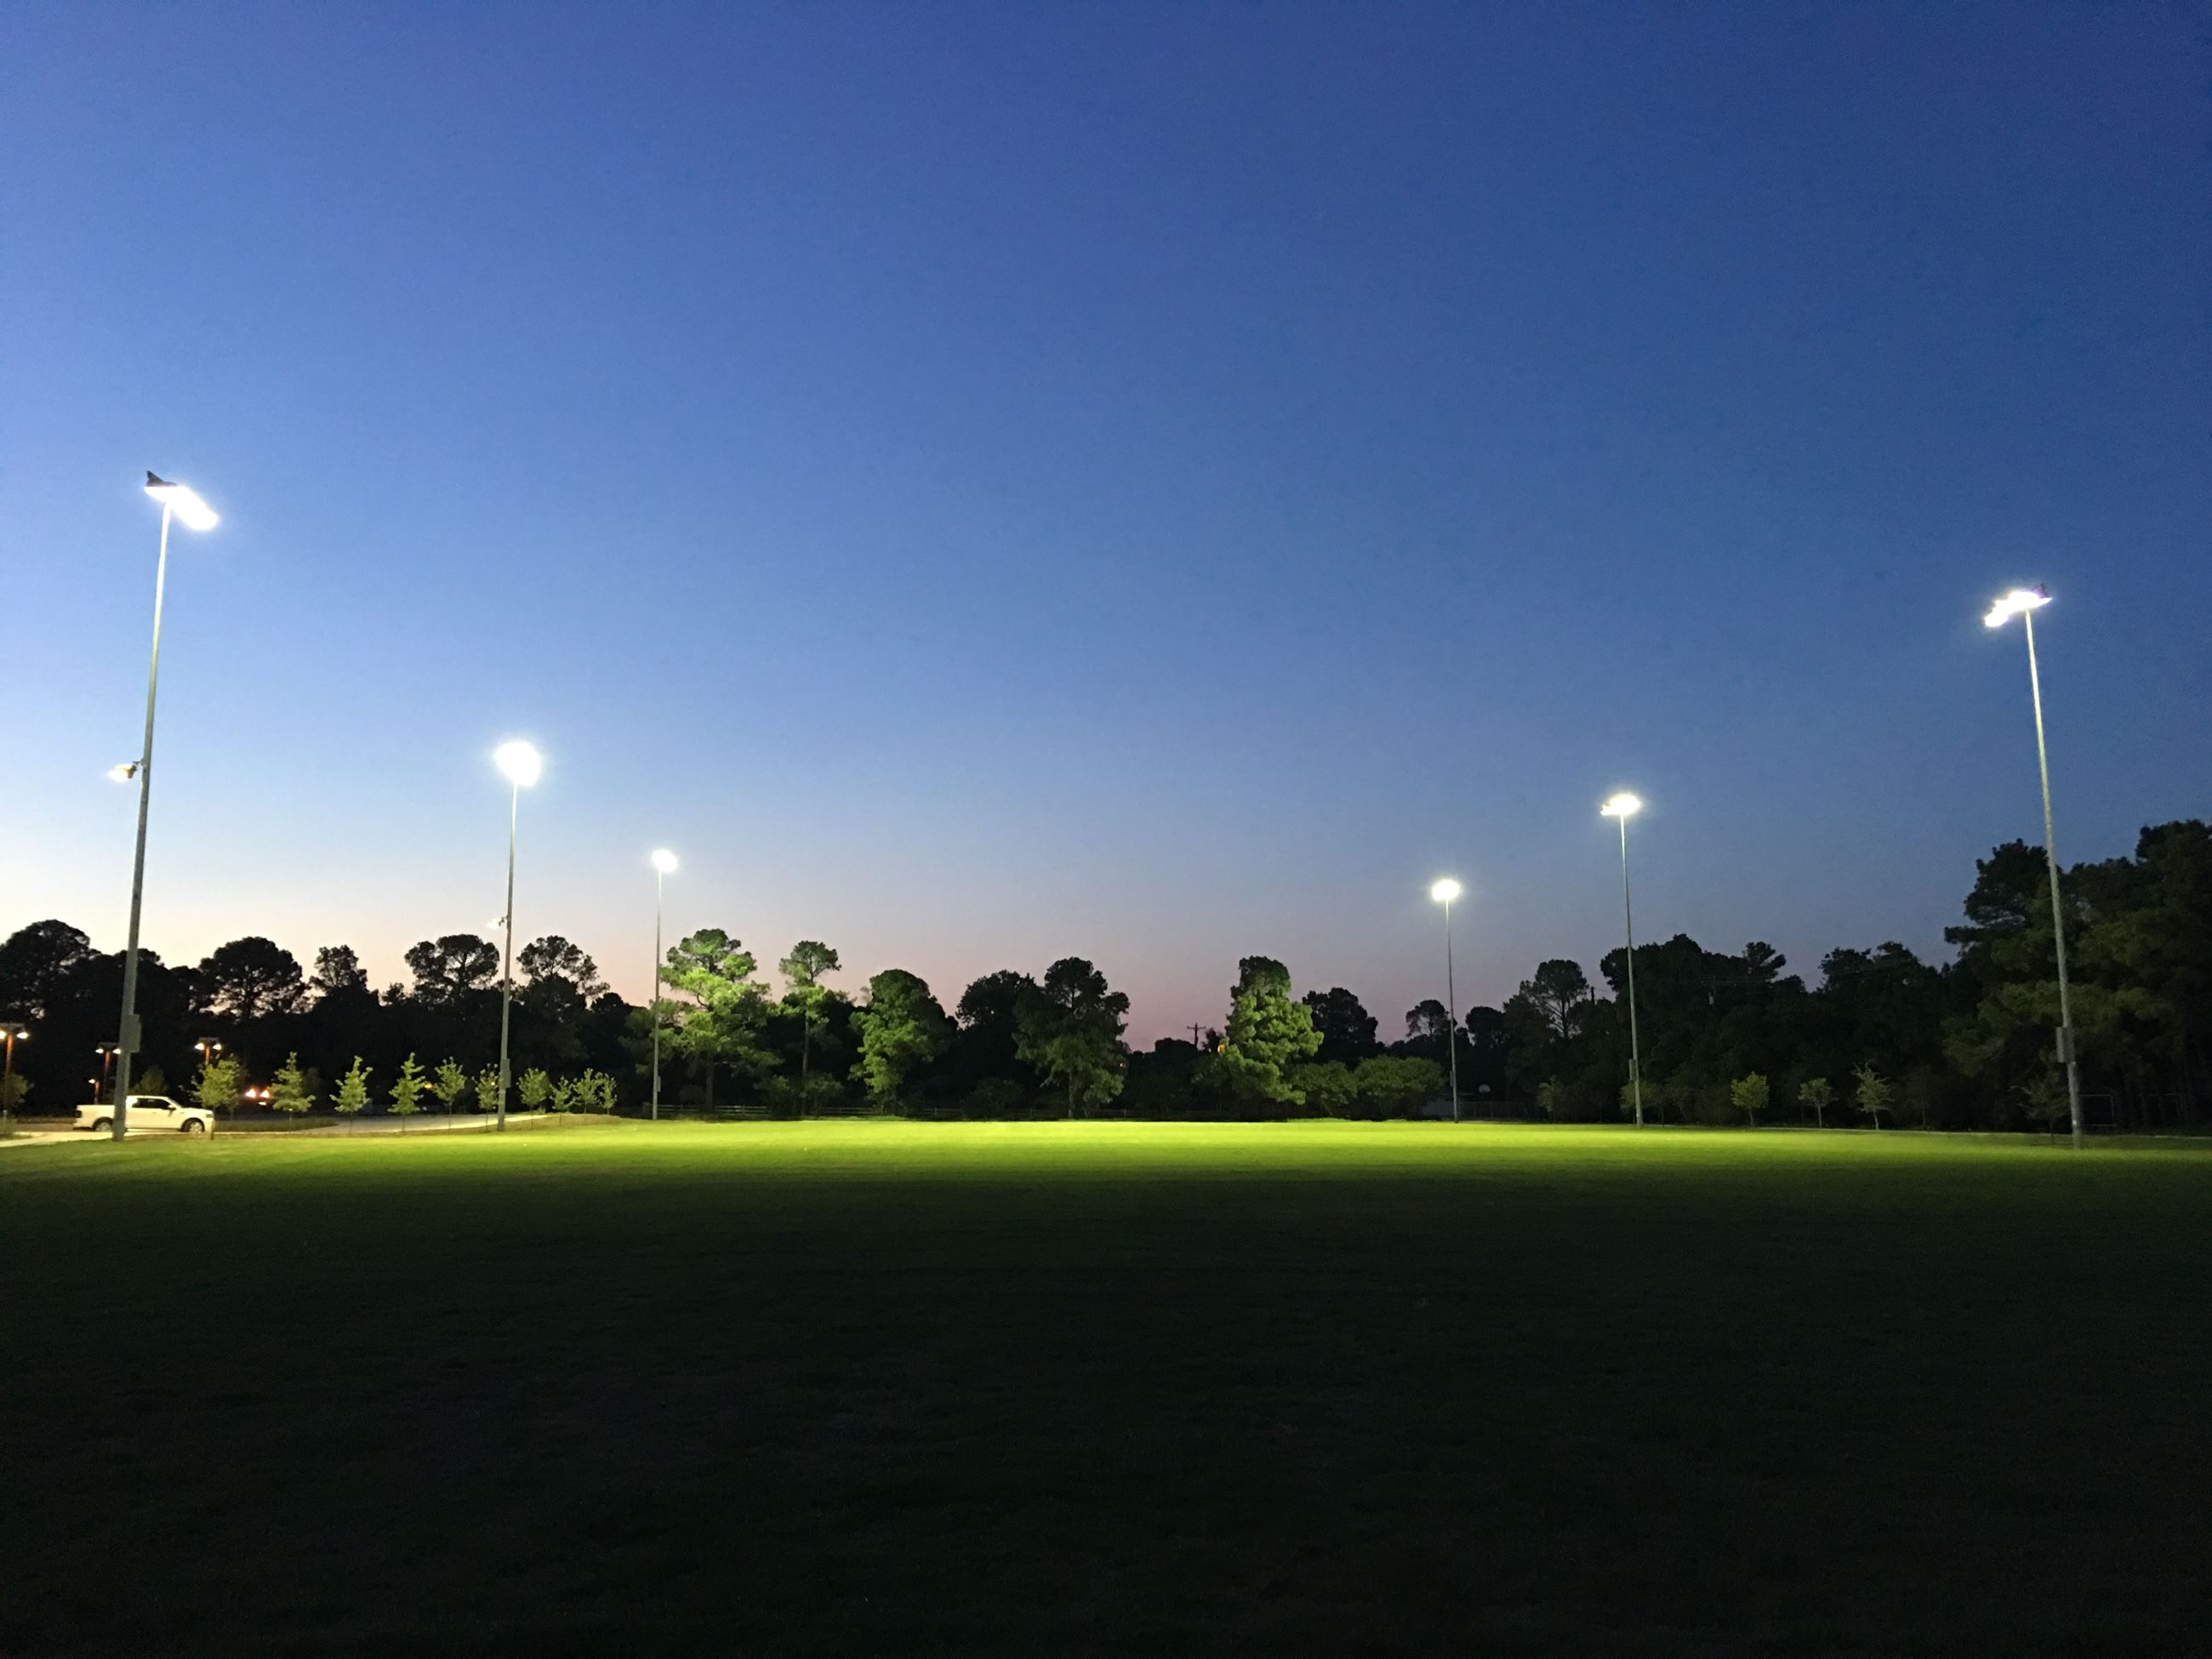 Soccer Fields at Night